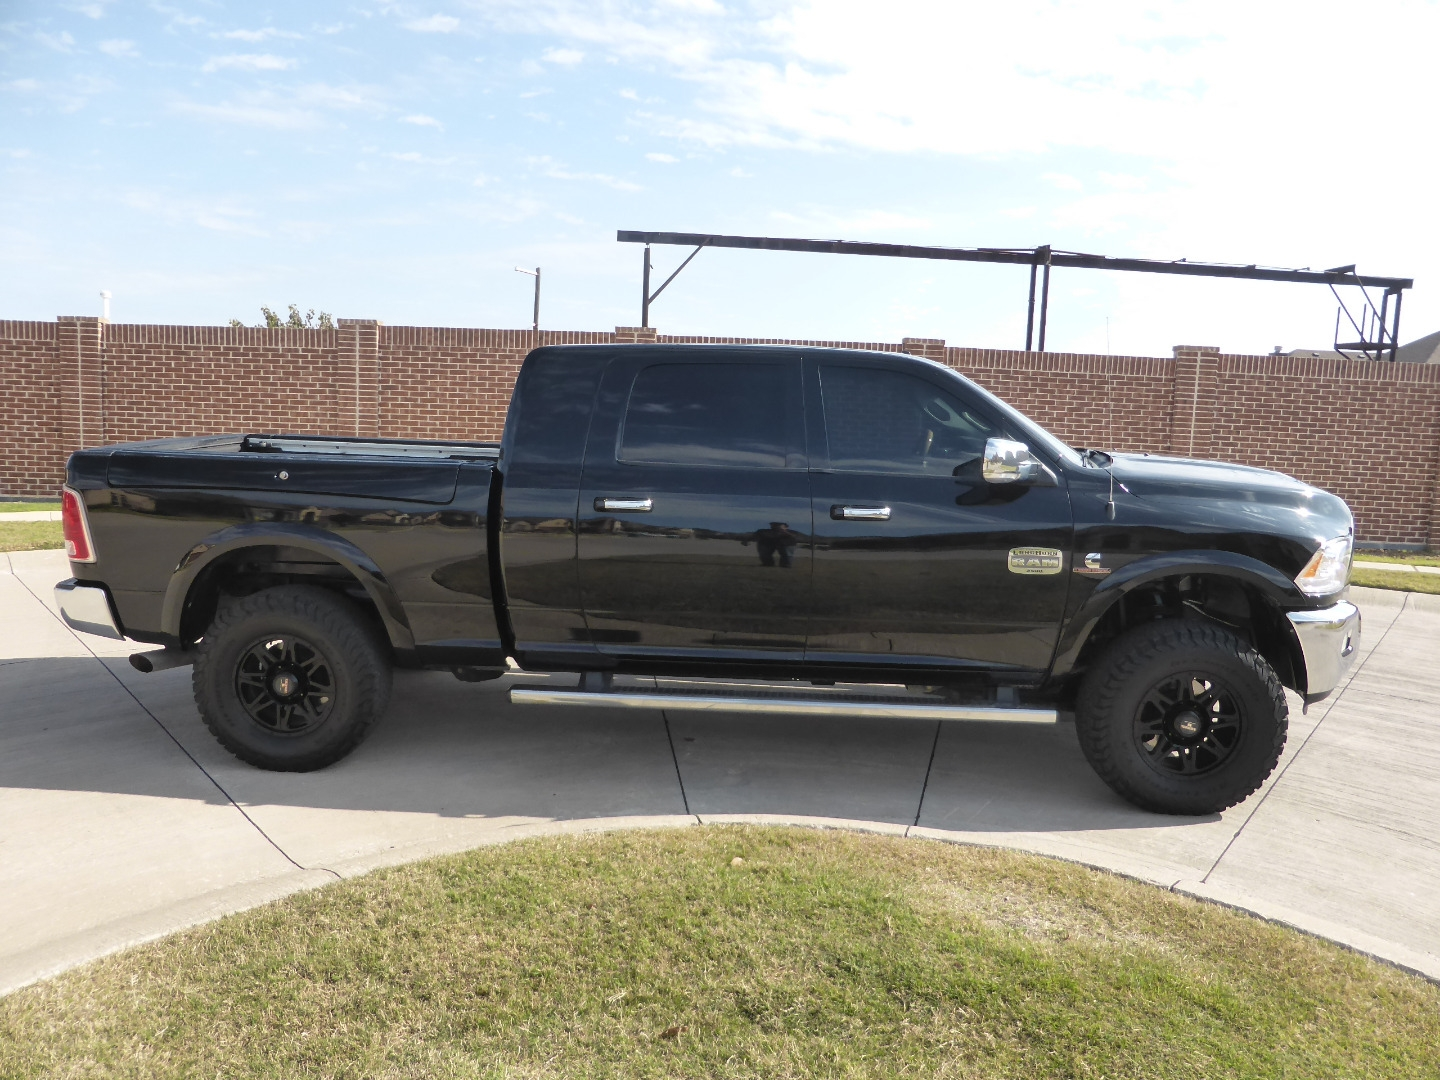 2014 Dodge Ram 2500 4wd Mega Cab Longhorn Diesel Sunroof Navigation Lifted Custom Wheels Village Motors Dealership In Lewisville